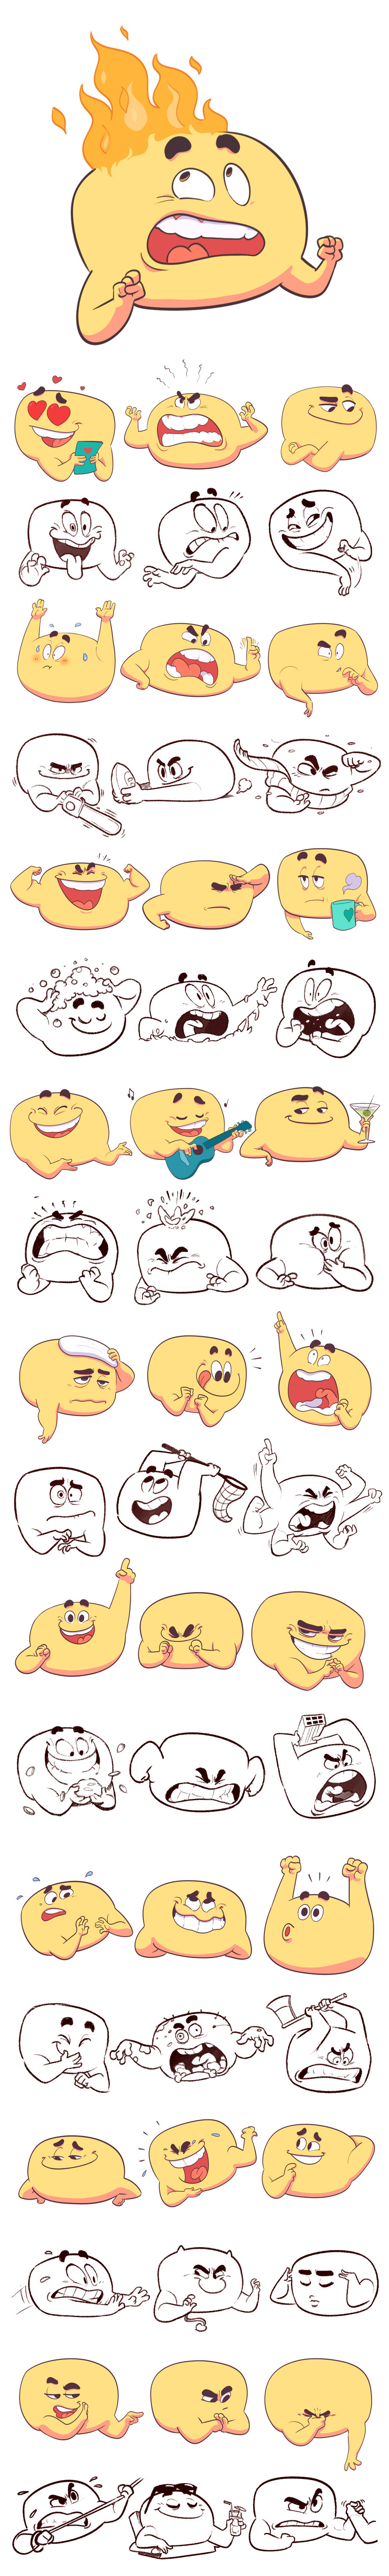 how_to_draw_facial_expressions_and_hands_faces_emoji_meme_memeslist.jpg